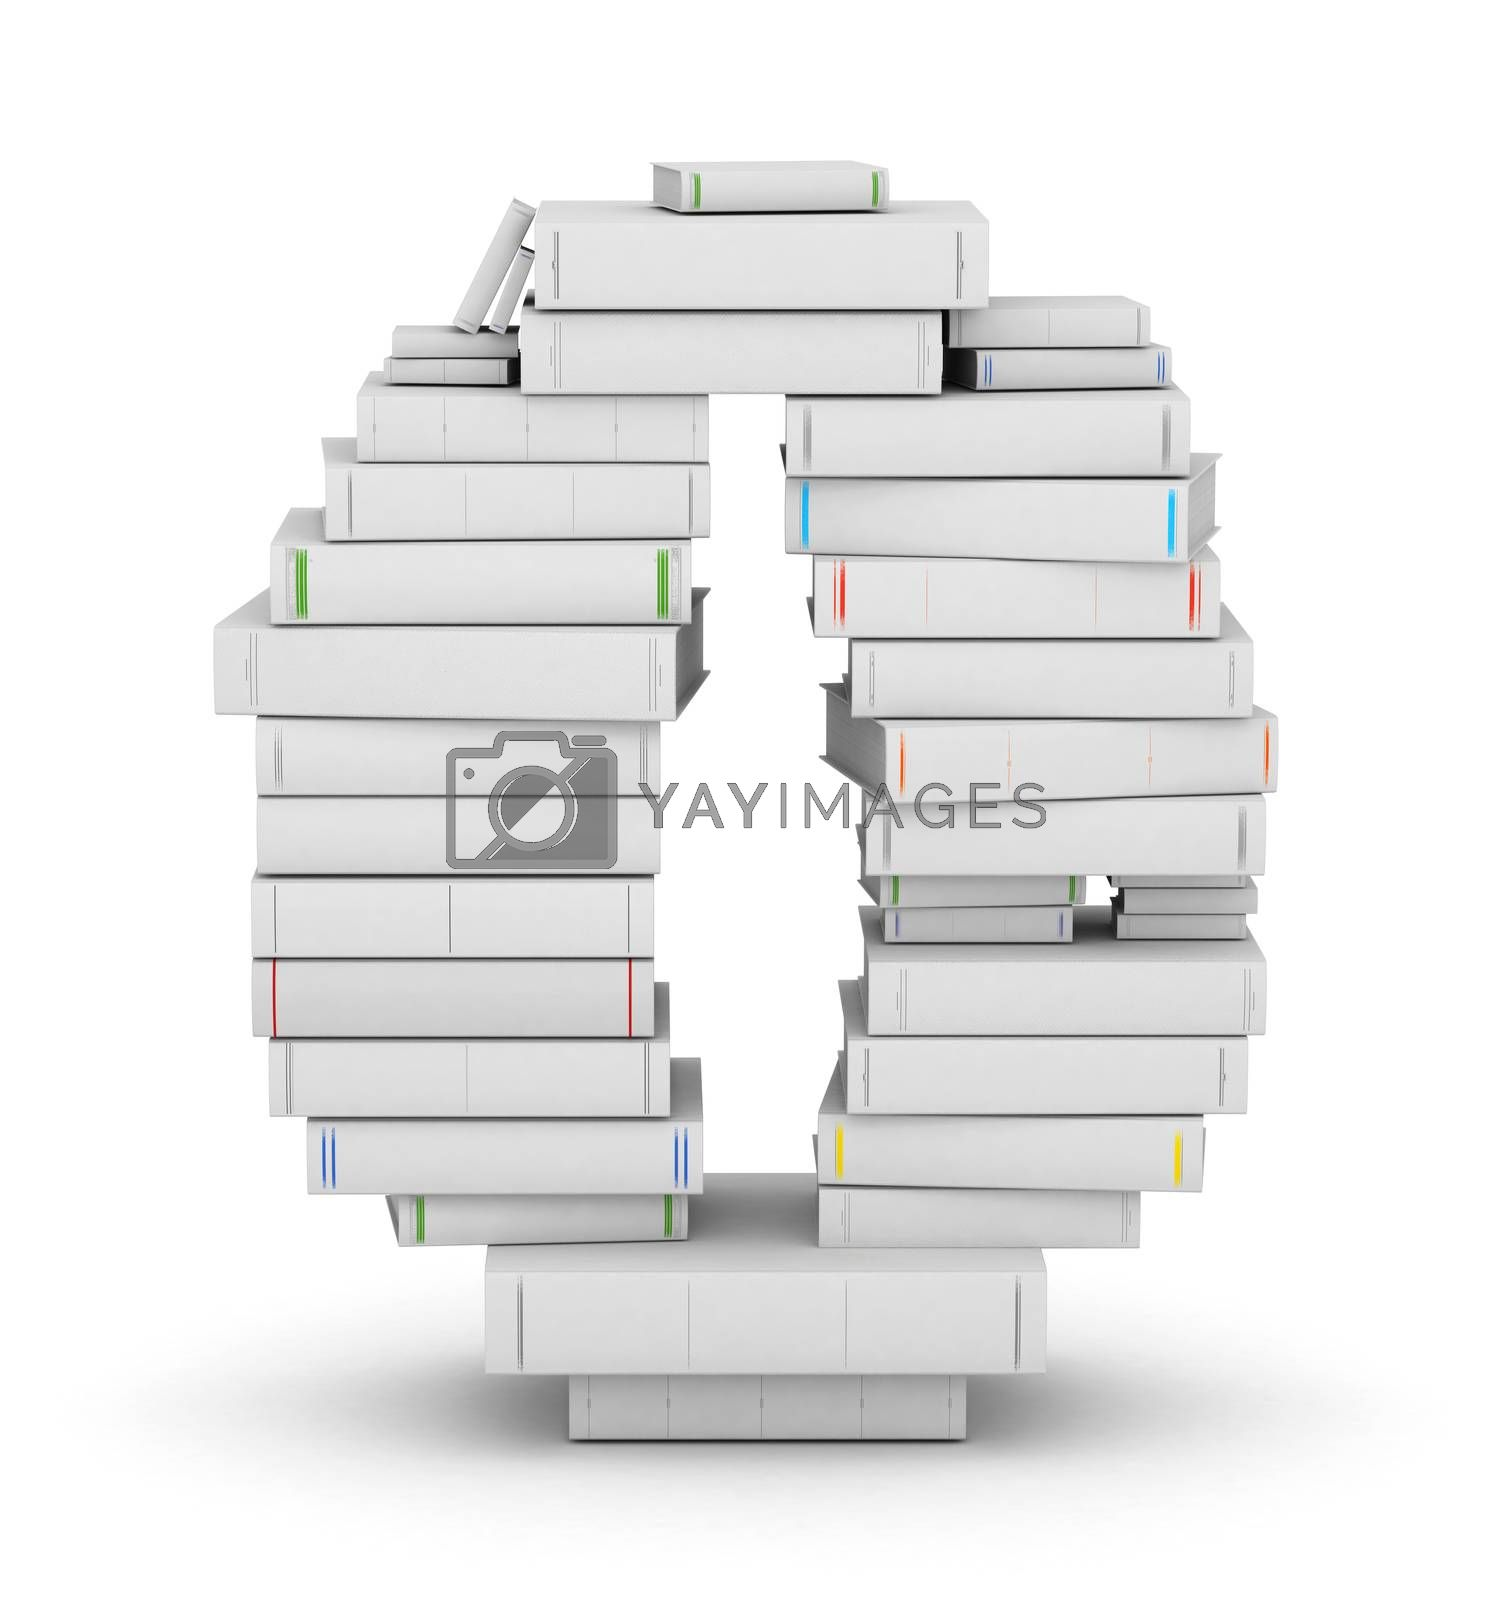 Royalty free image of Number 0, stacked from blank books by iunewind